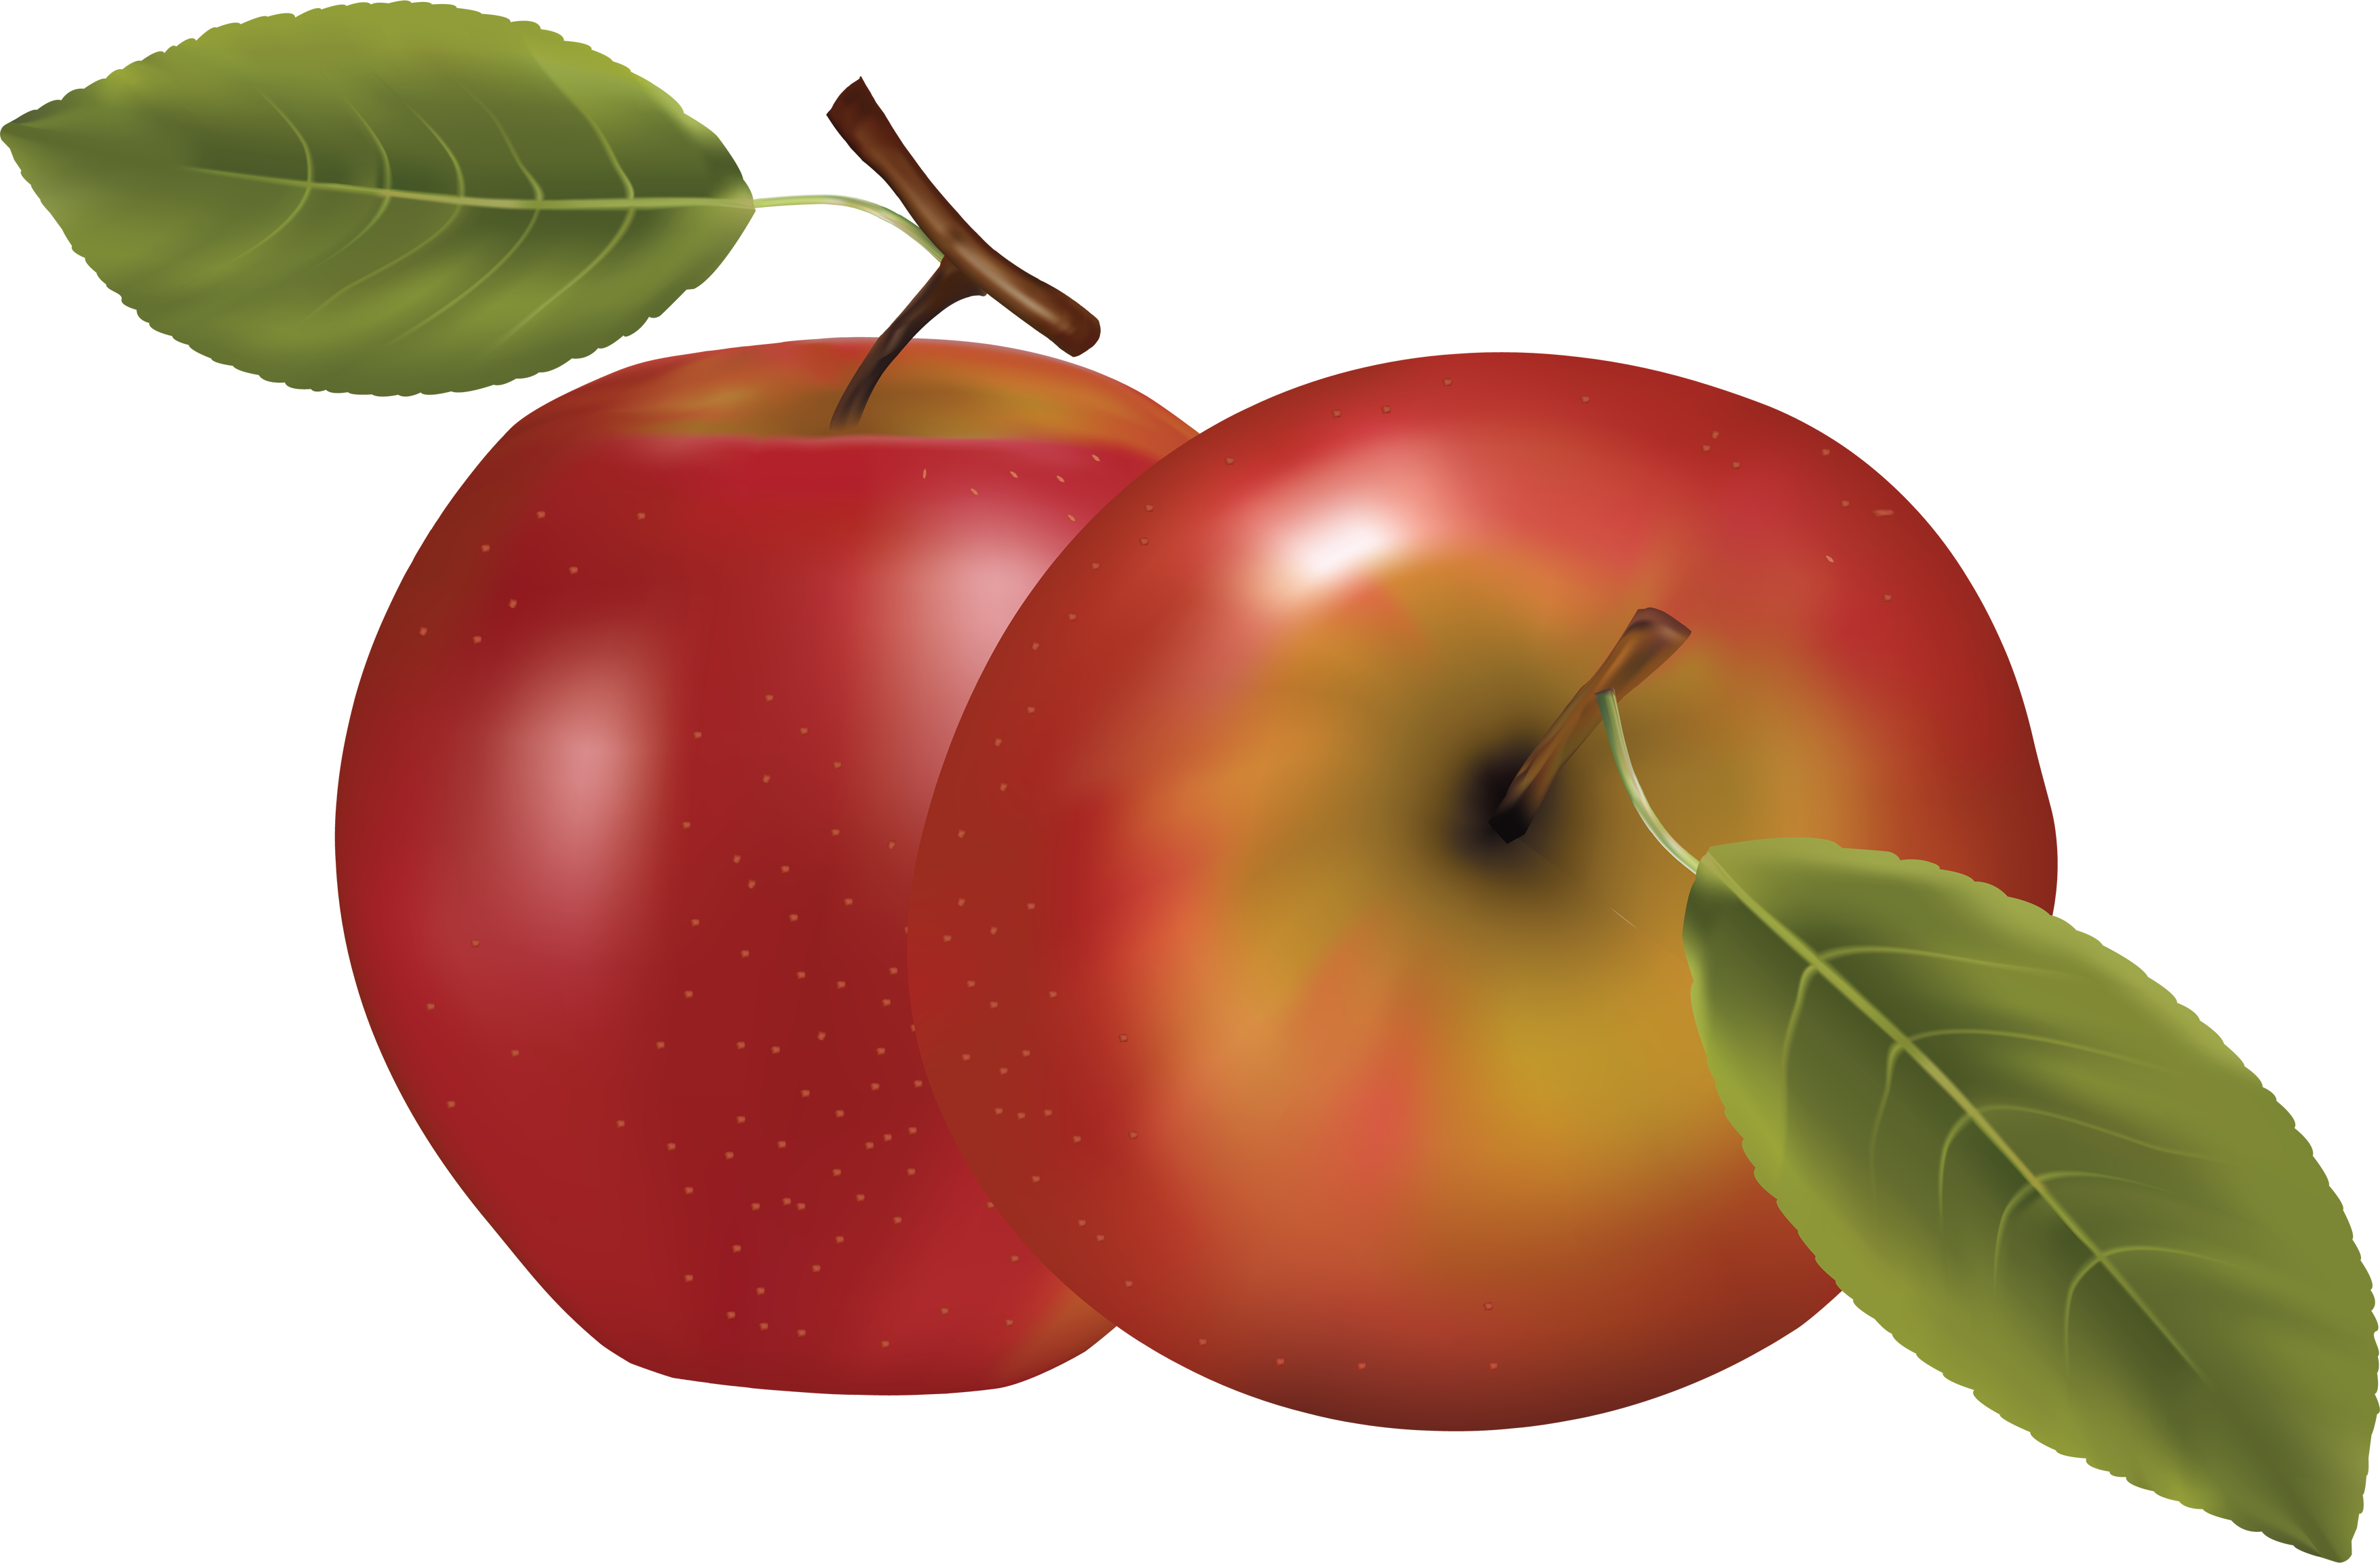 Clipart apple background jpg transparent stock Red Apple PNG Image - PurePNG | Free transparent CC0 PNG Image Library jpg transparent stock